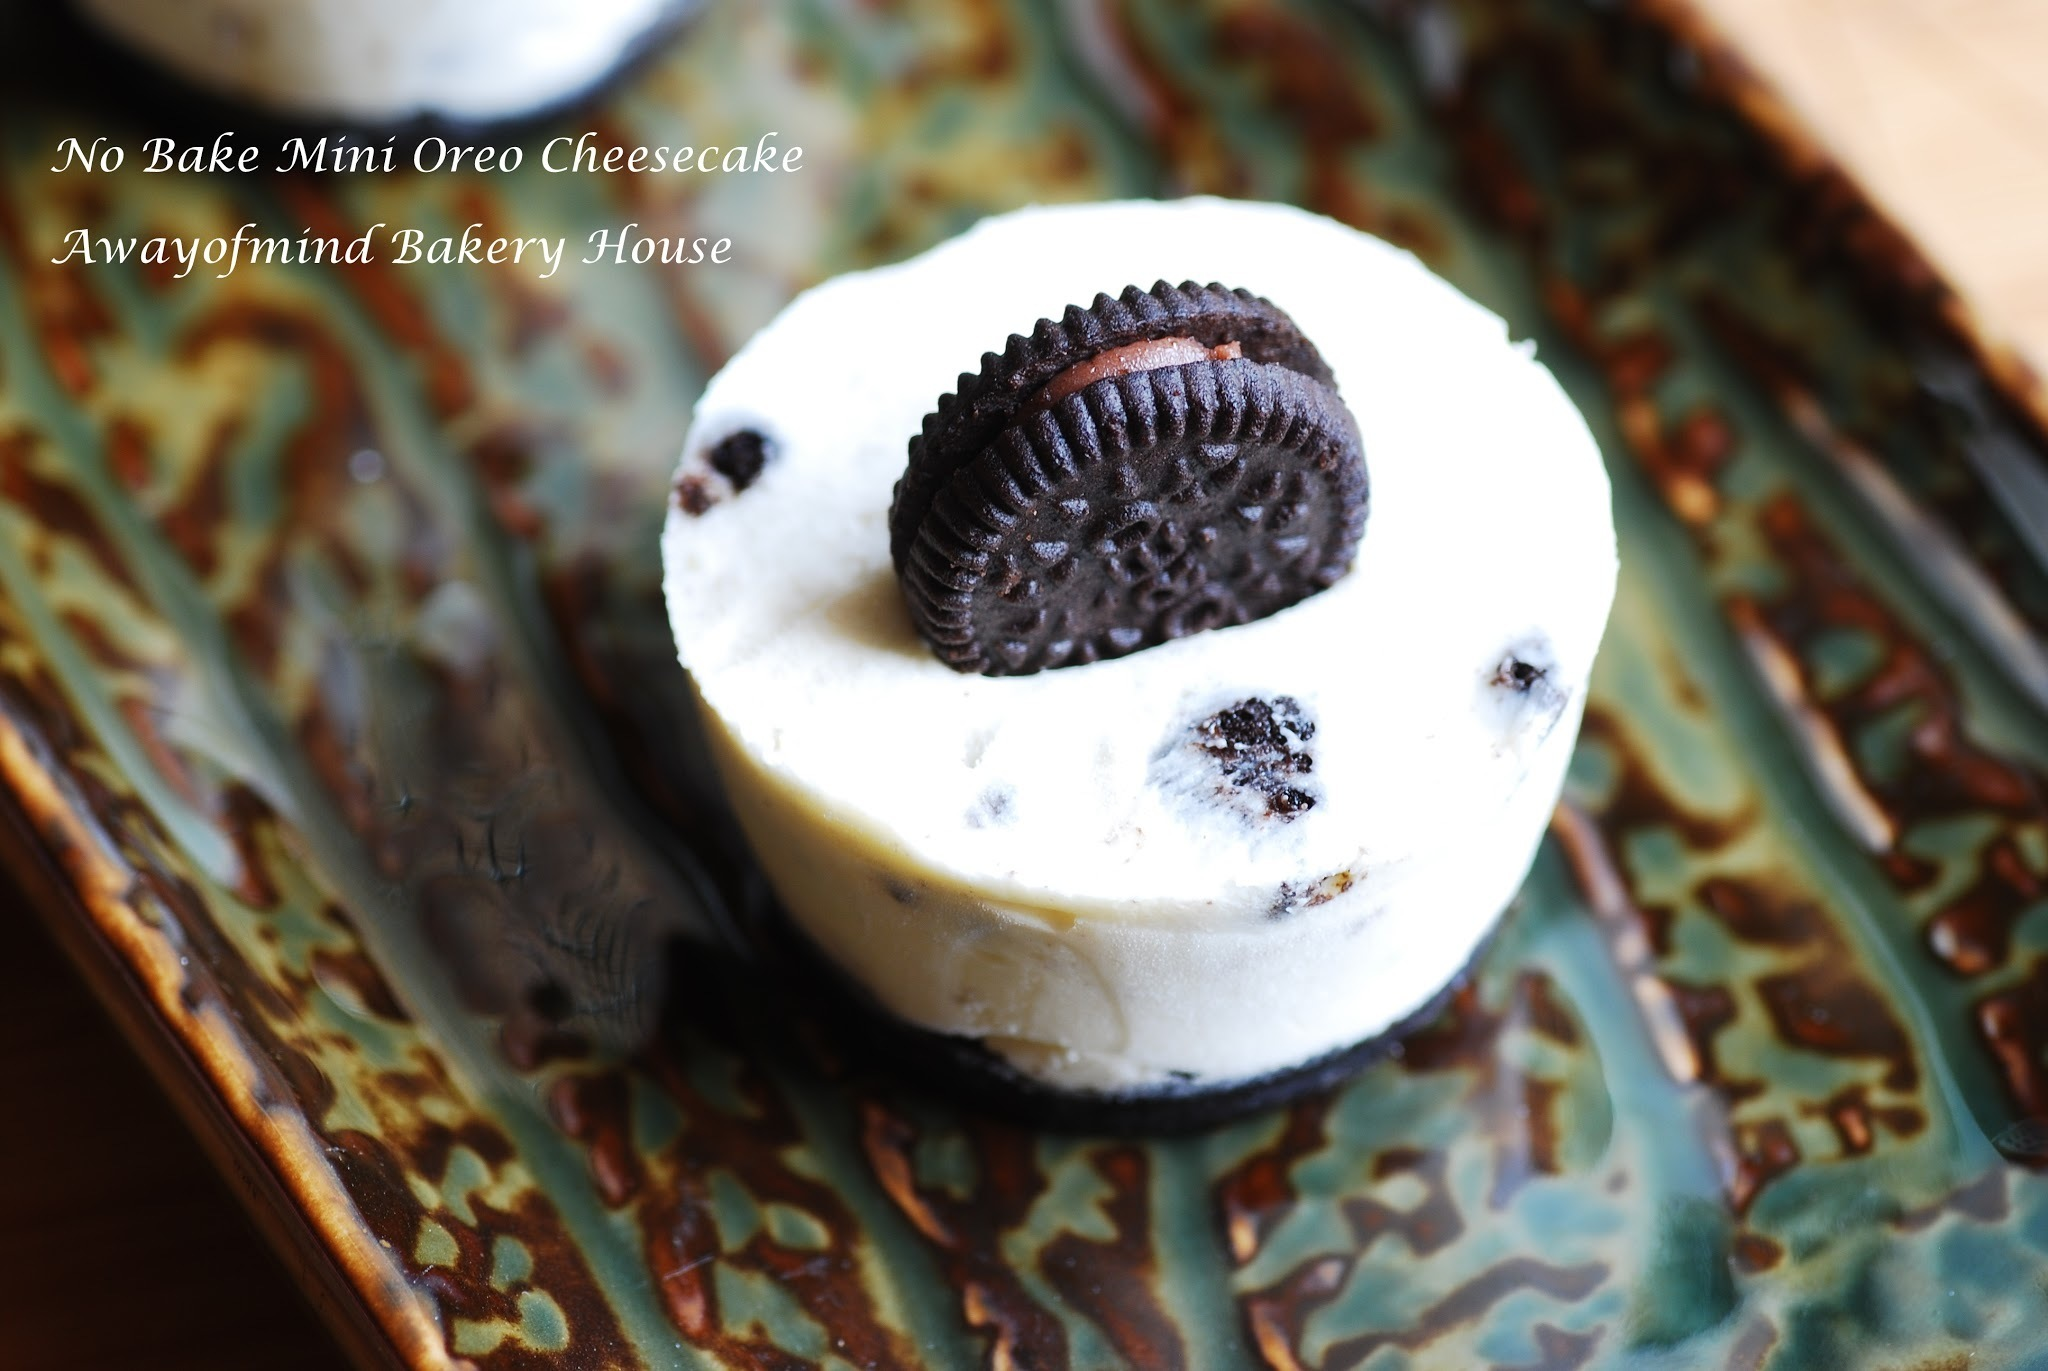 No Bake Mini Oreo Cheesecake